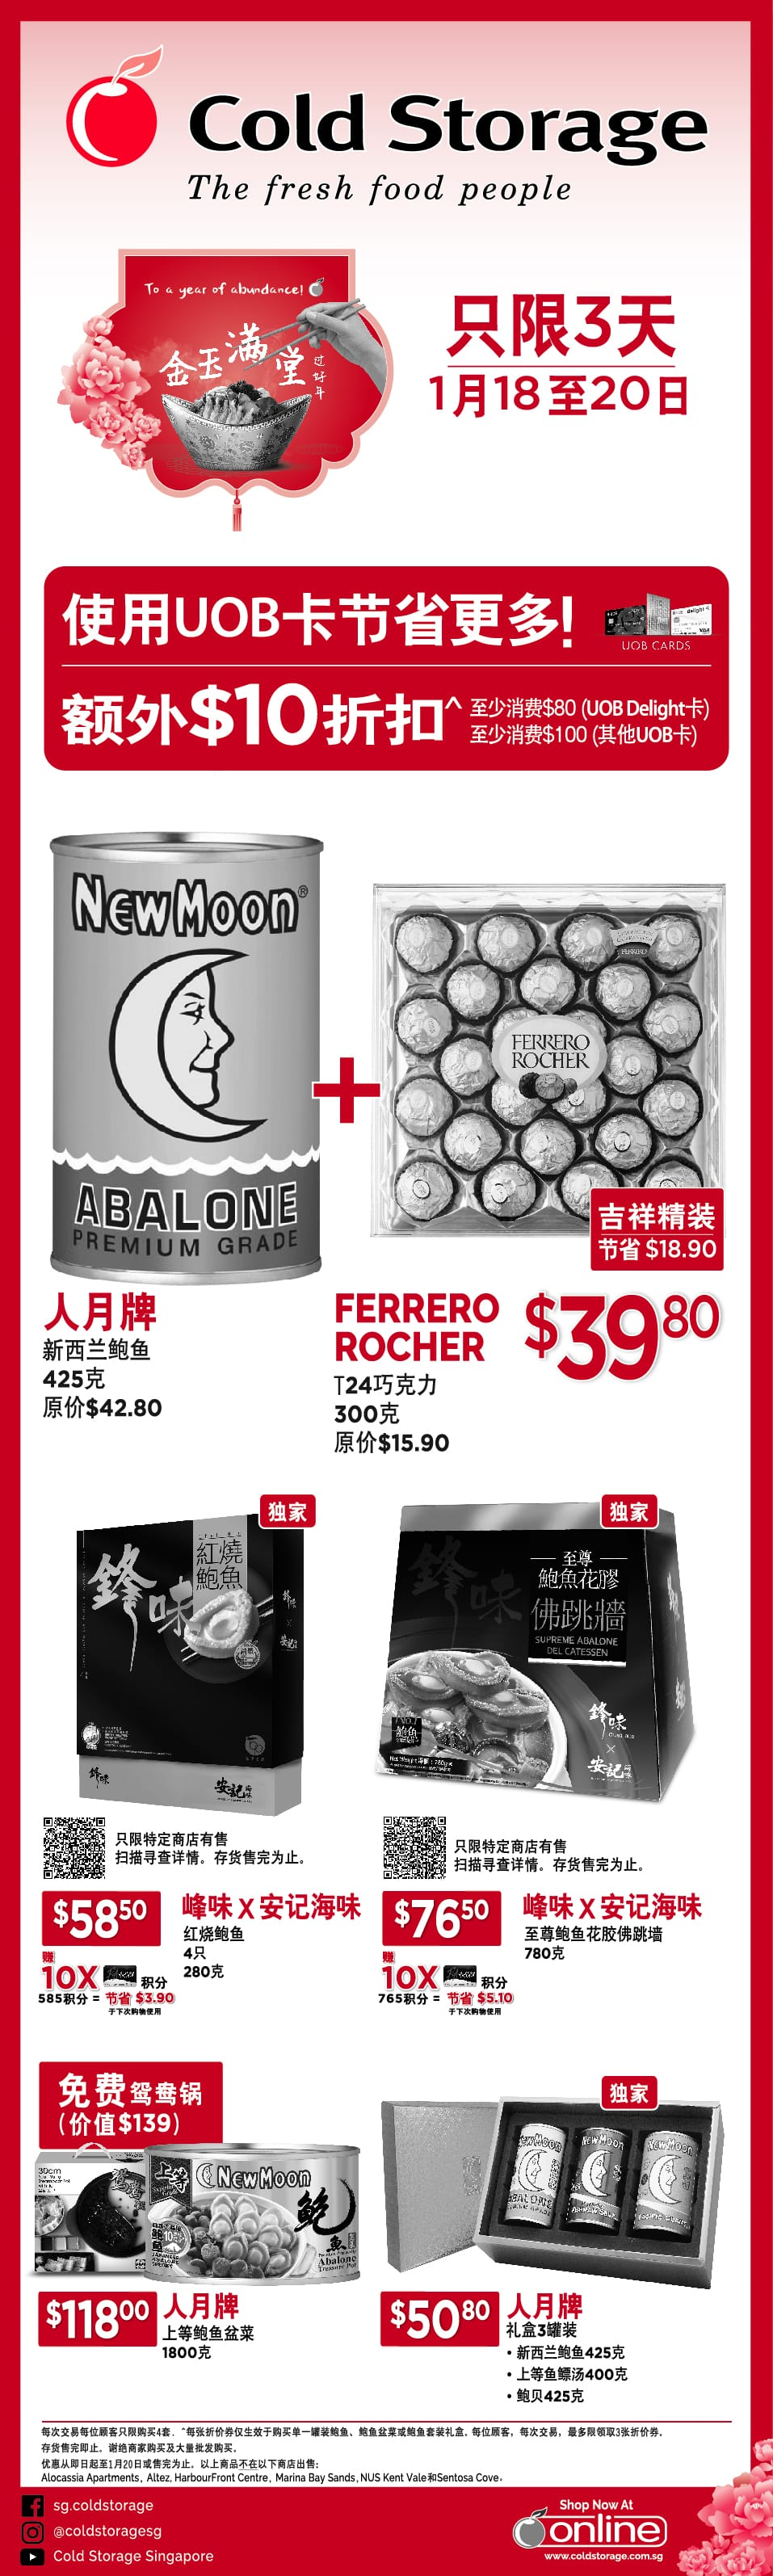 ZB Chinese New Year Abalone Ad (Till 20th Jan)